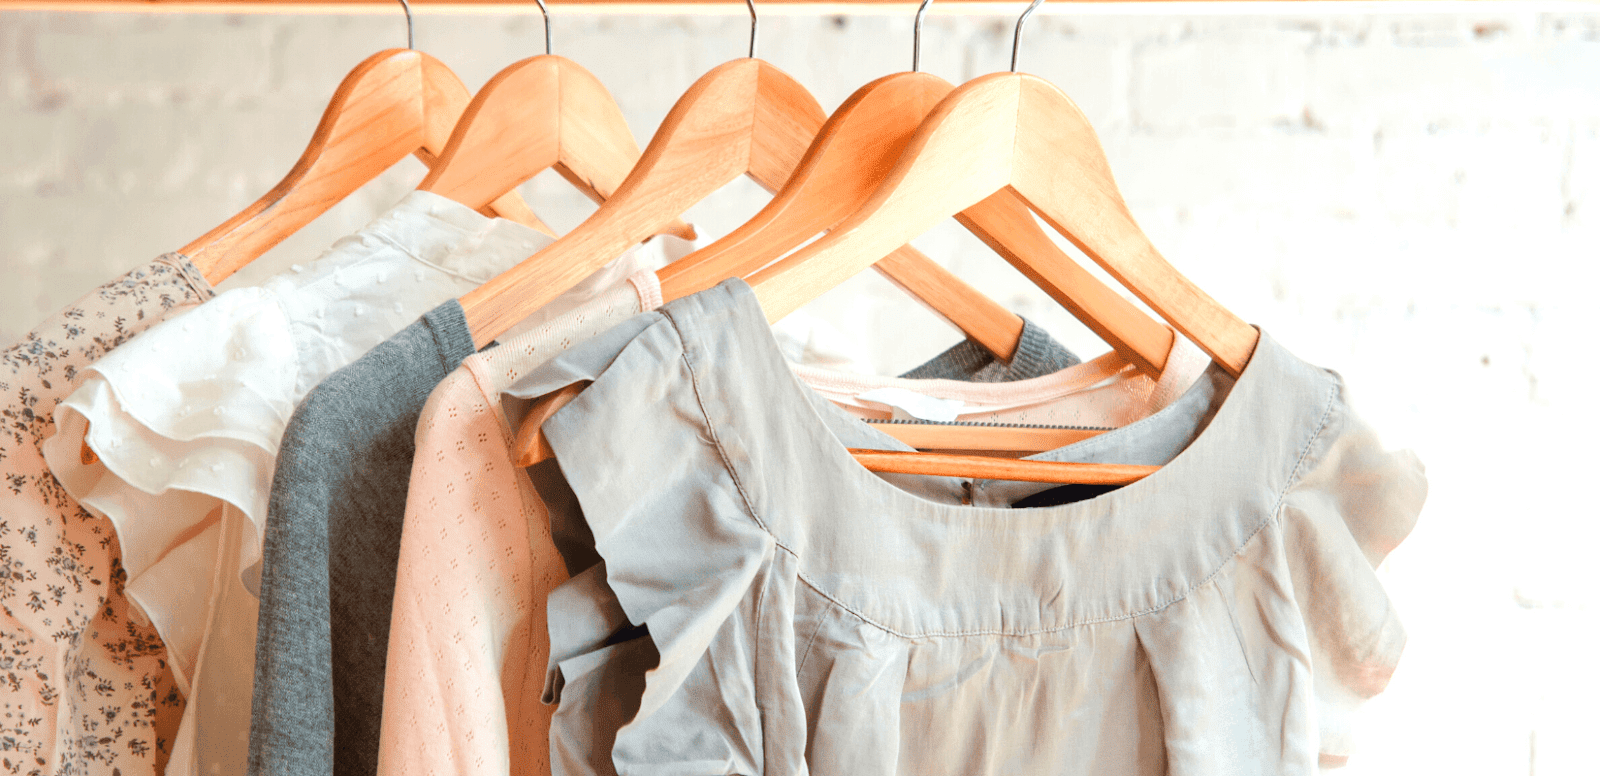 Women's clothes on a wooden hanger